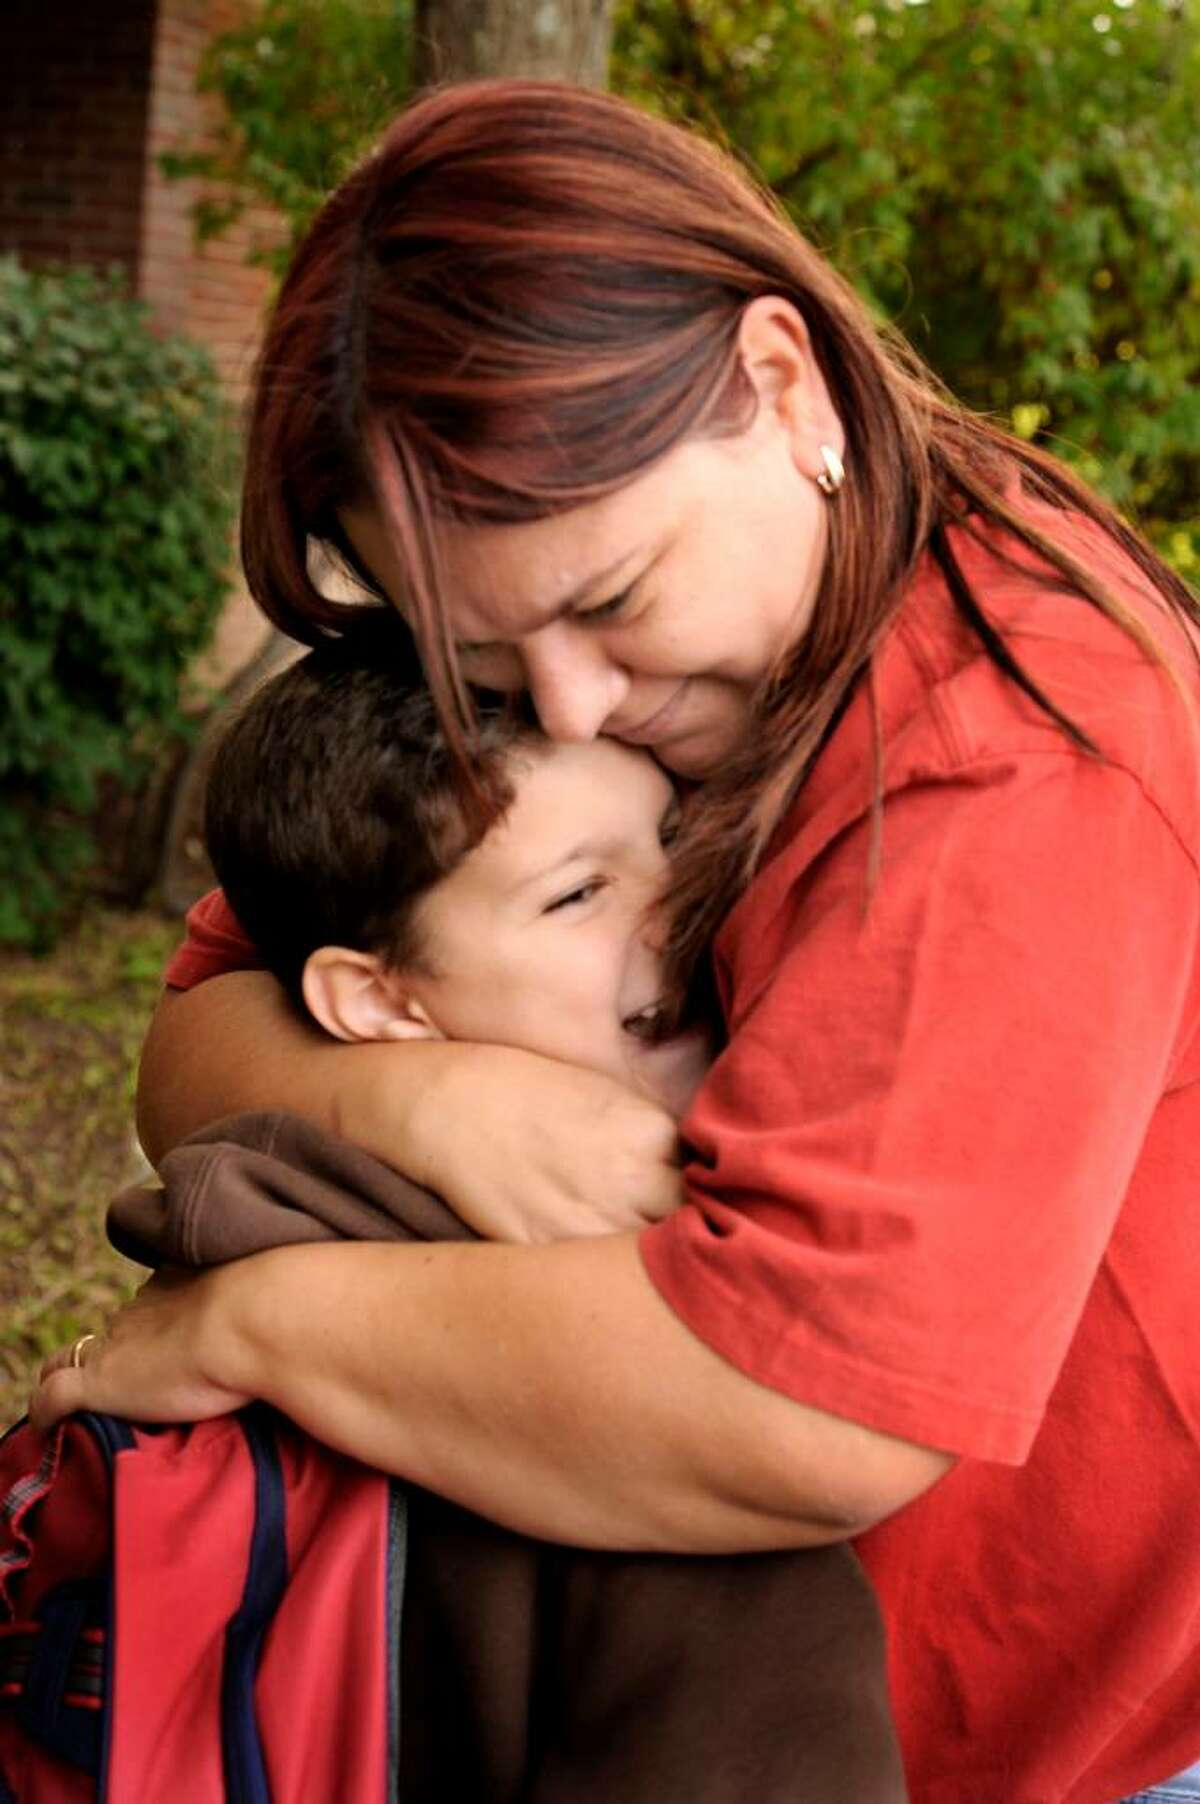 Antonio Goncalves gets a goodbye hug from his mom,Patricia, before entering King Street Primary School in Danbury for his first day in first grade on Sept. 3, 2009.